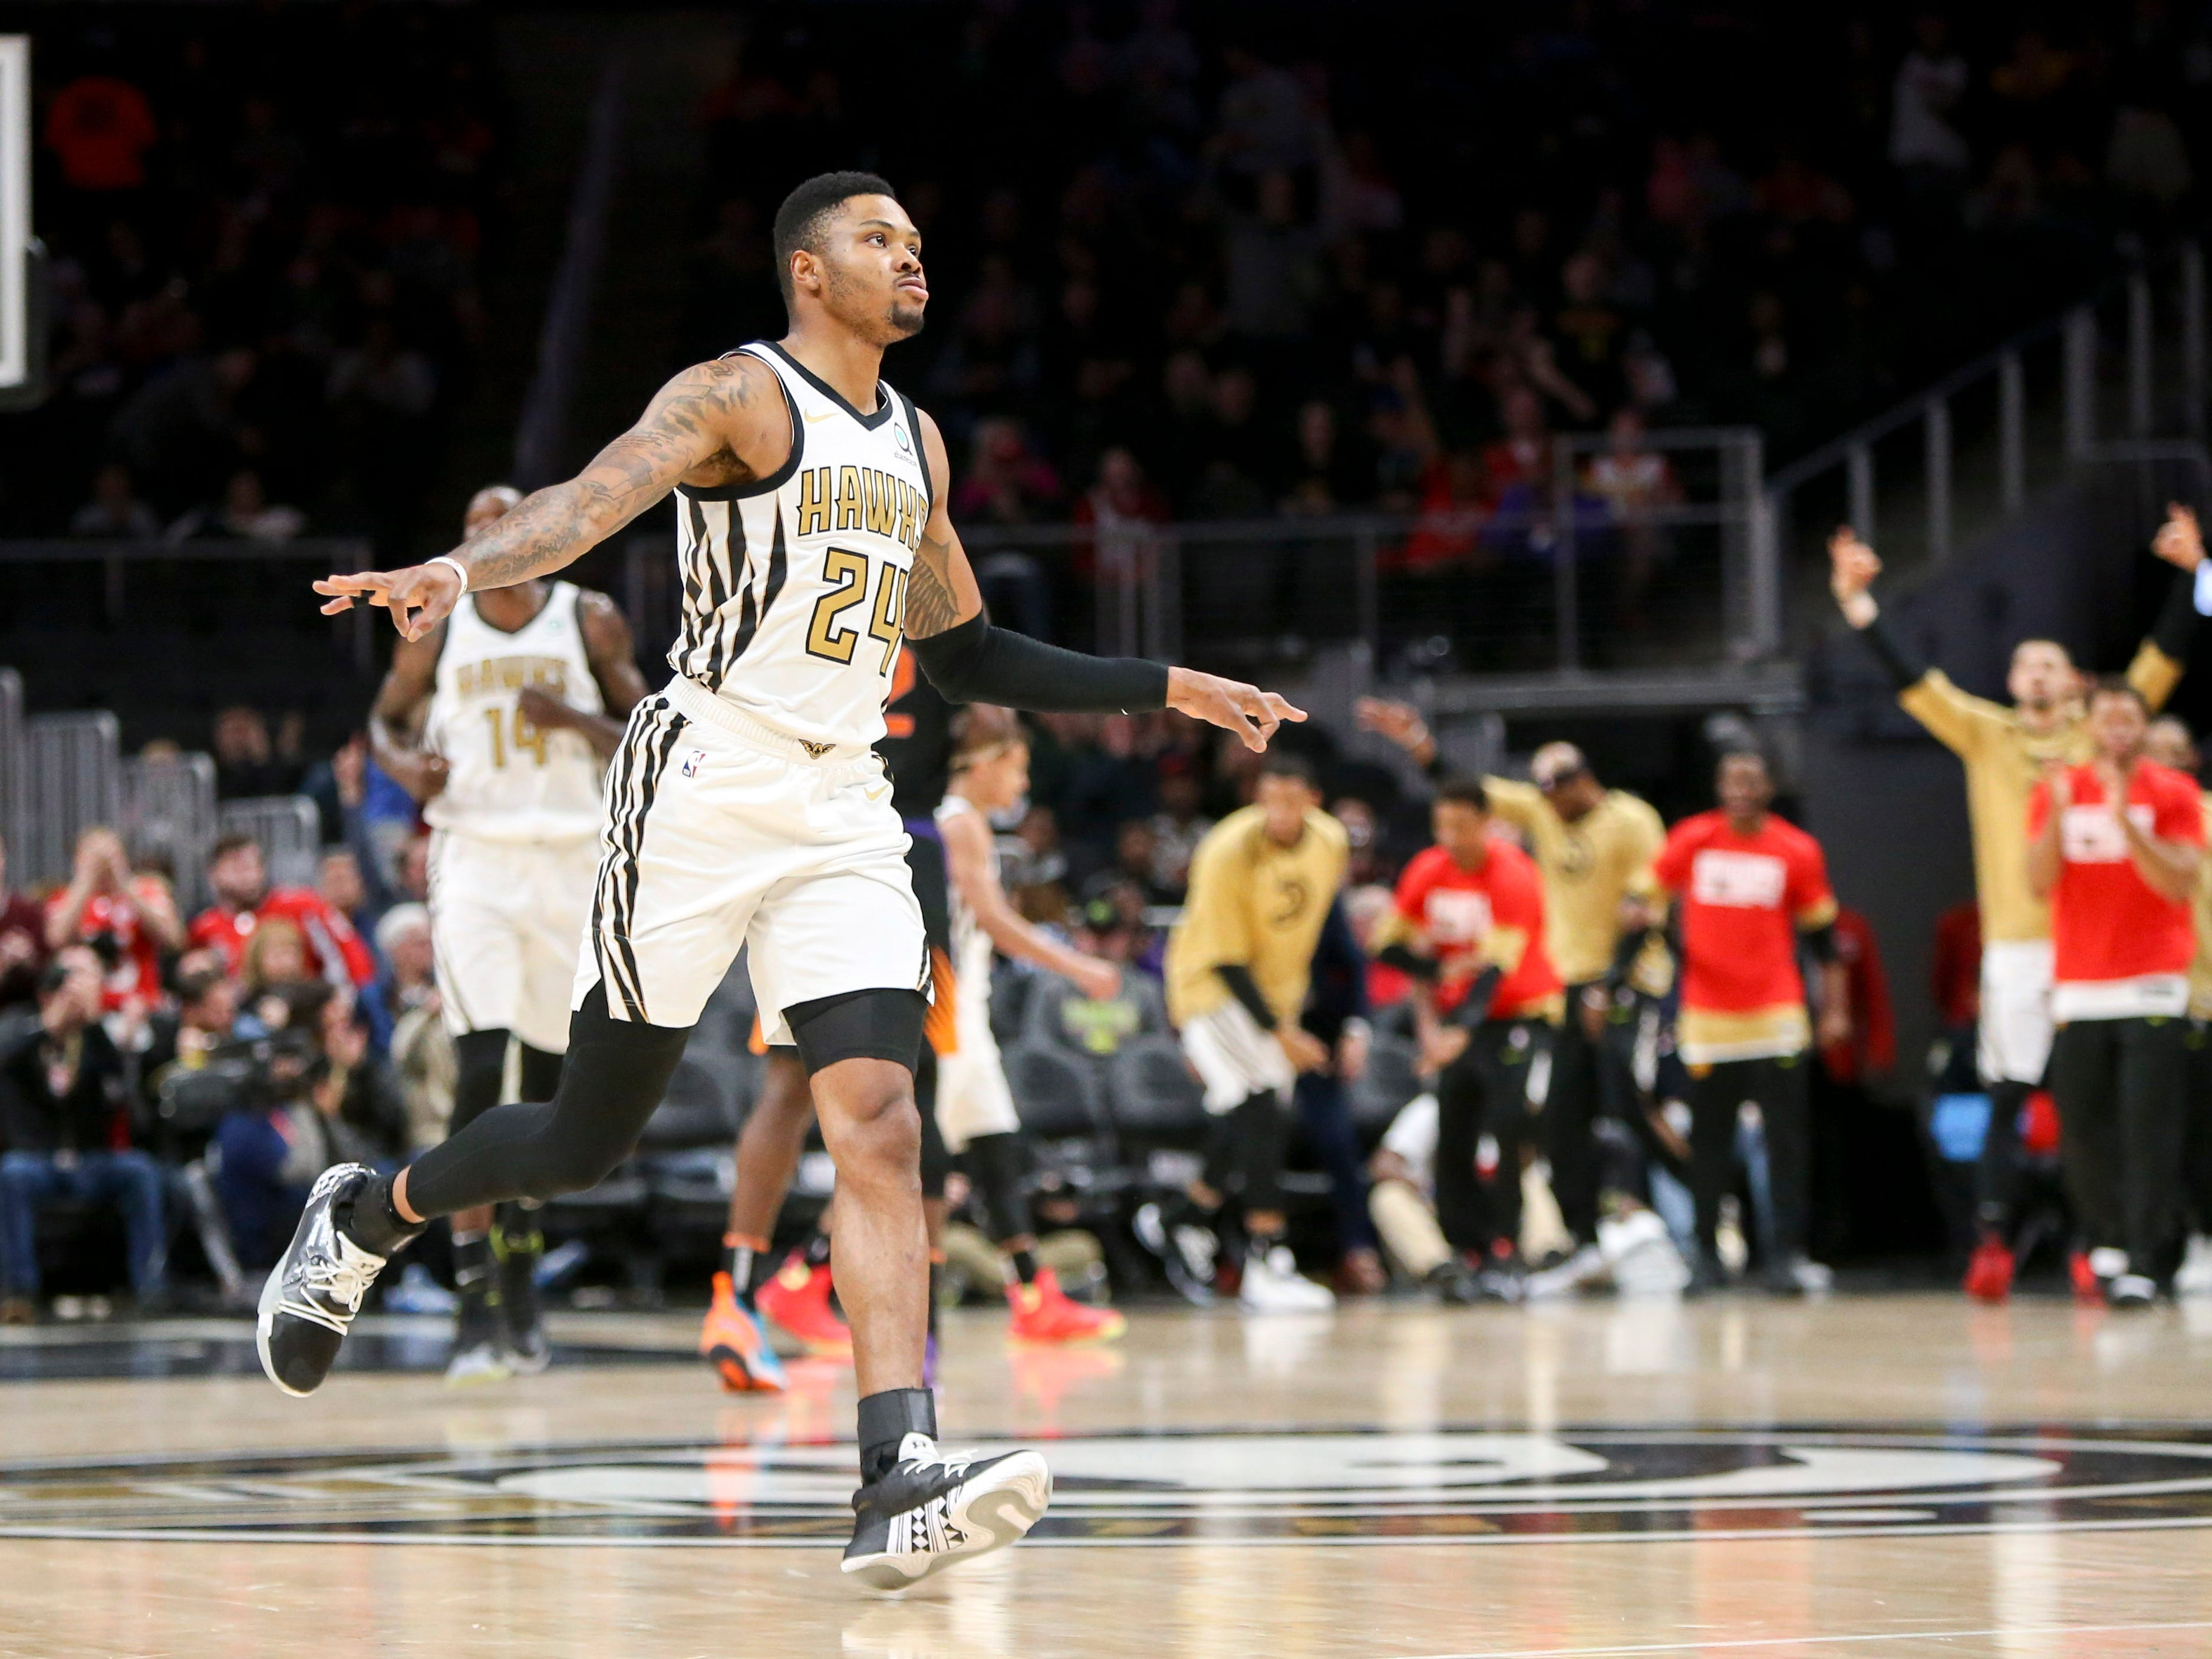 Feb 23, 2019: Atlanta Hawks guard Kent Bazemore (24) reacts after a made three-pointer against the Phoenix Suns in the first quarter at State Farm Arena.